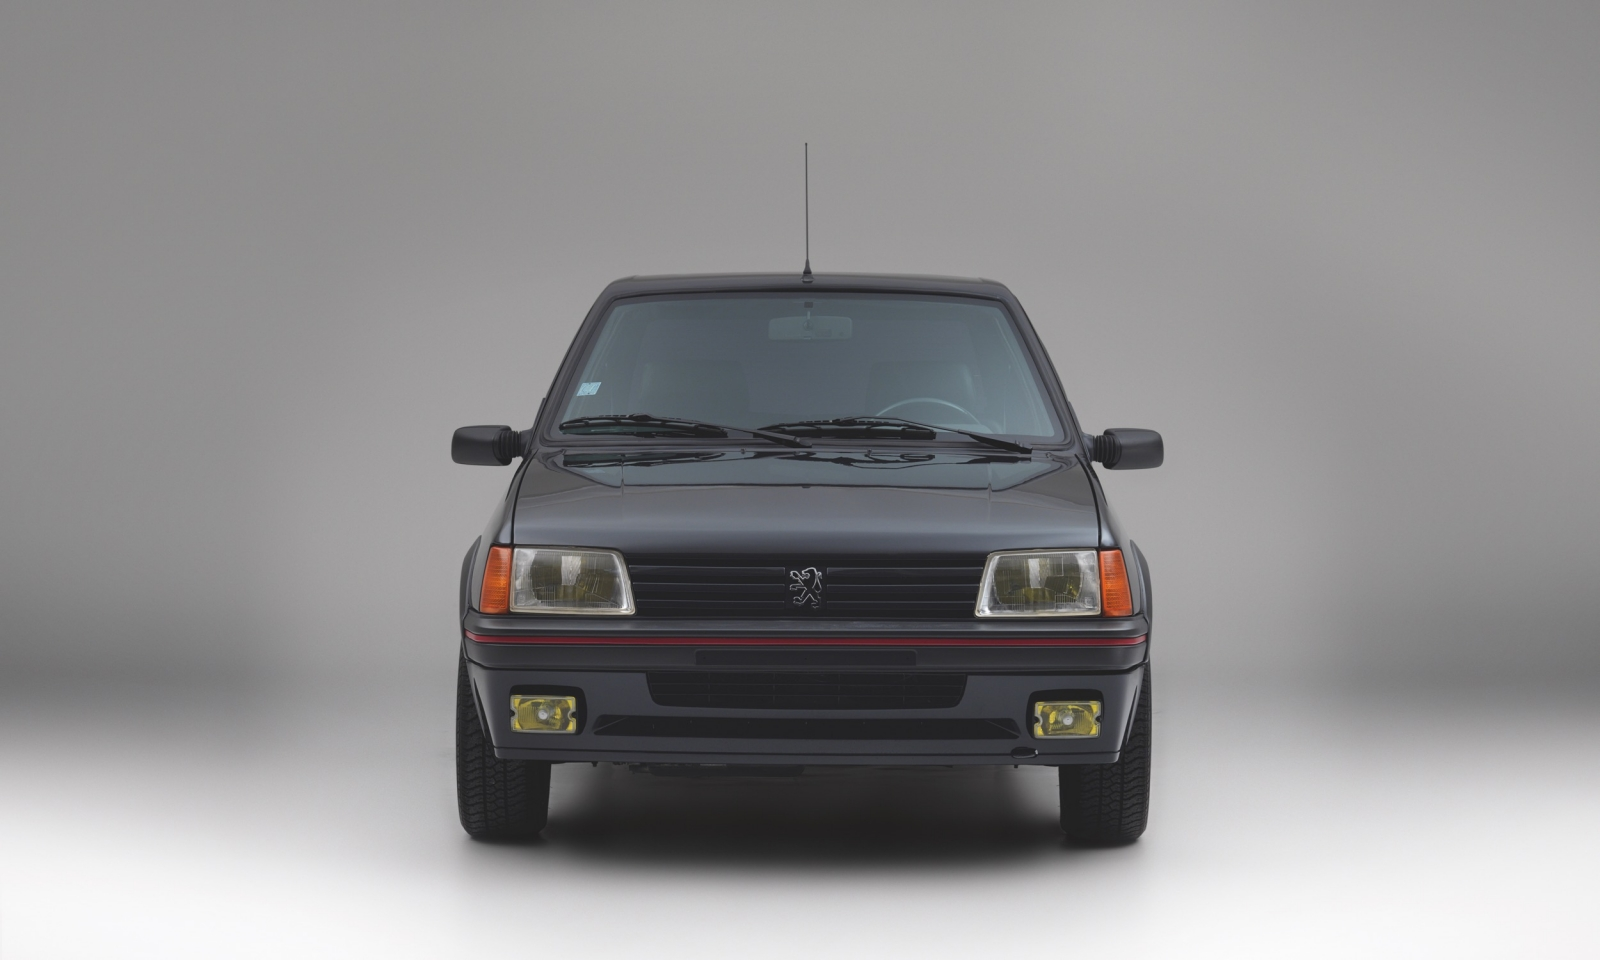 Armored_1990_Peugeot_205_GTI_0001